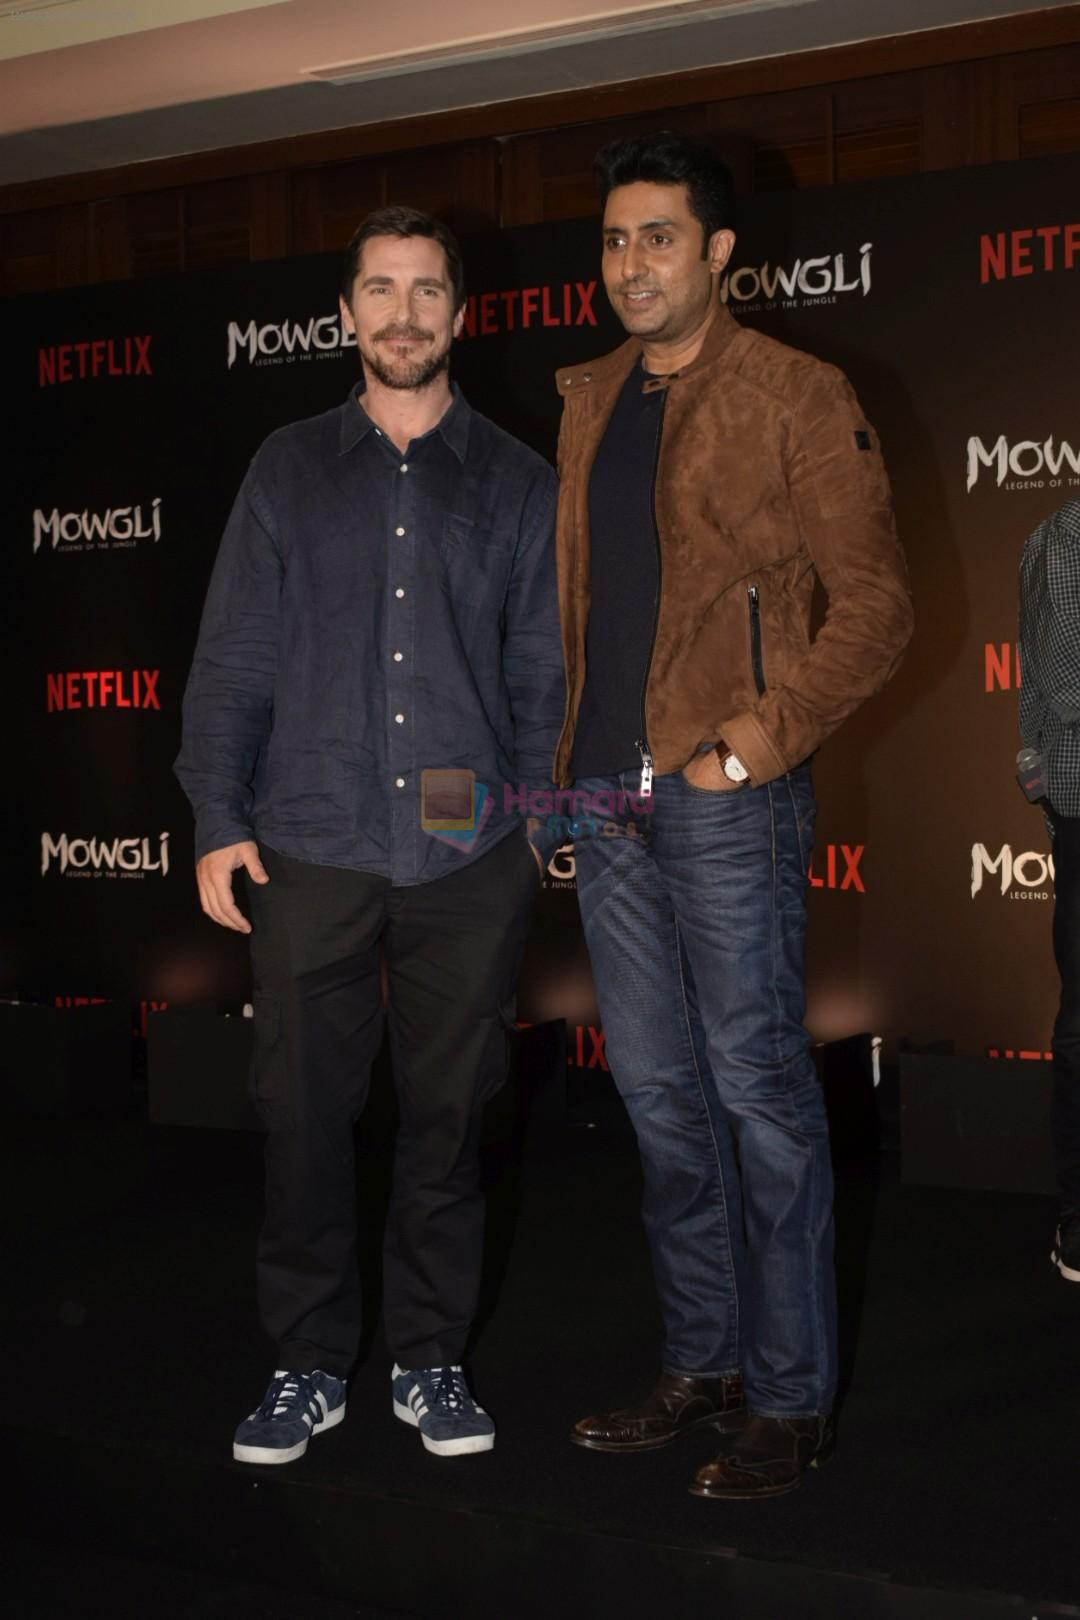 Abhishek Bachchan at the Press conference of Mowgli by Netflix in jw marriott, juhu on 26th Nov 2018